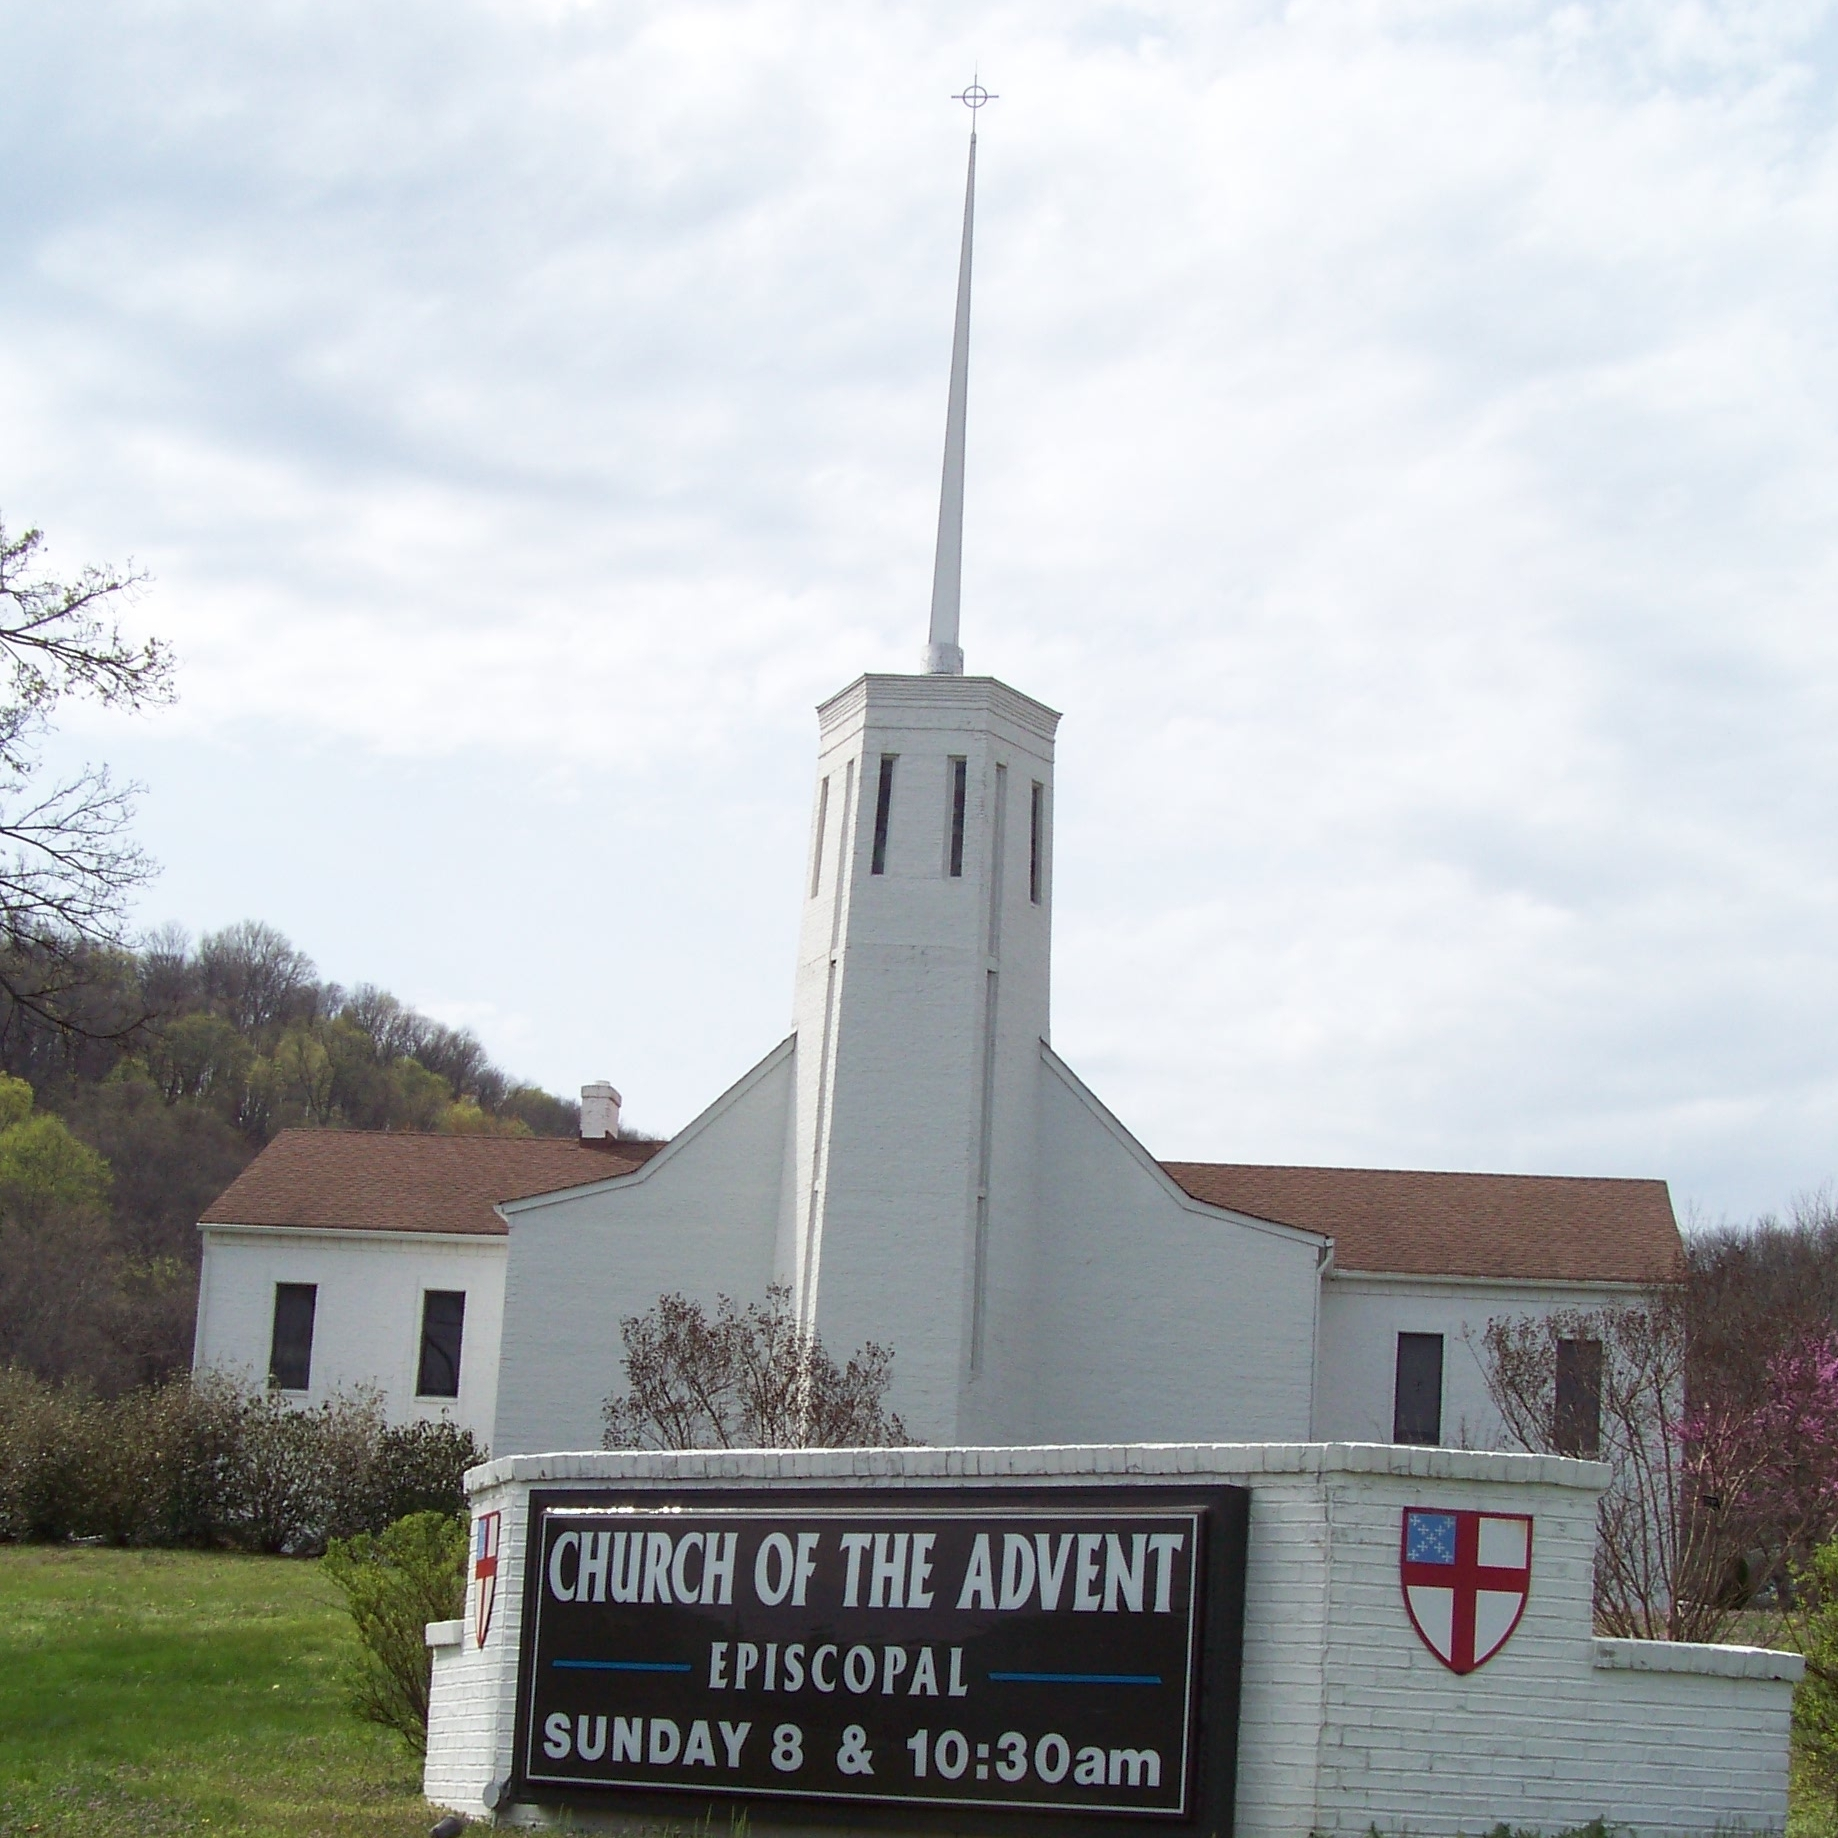 Insight Counseling Centers in Brentwood, TN, hosted by Episcopal Church of the Advent